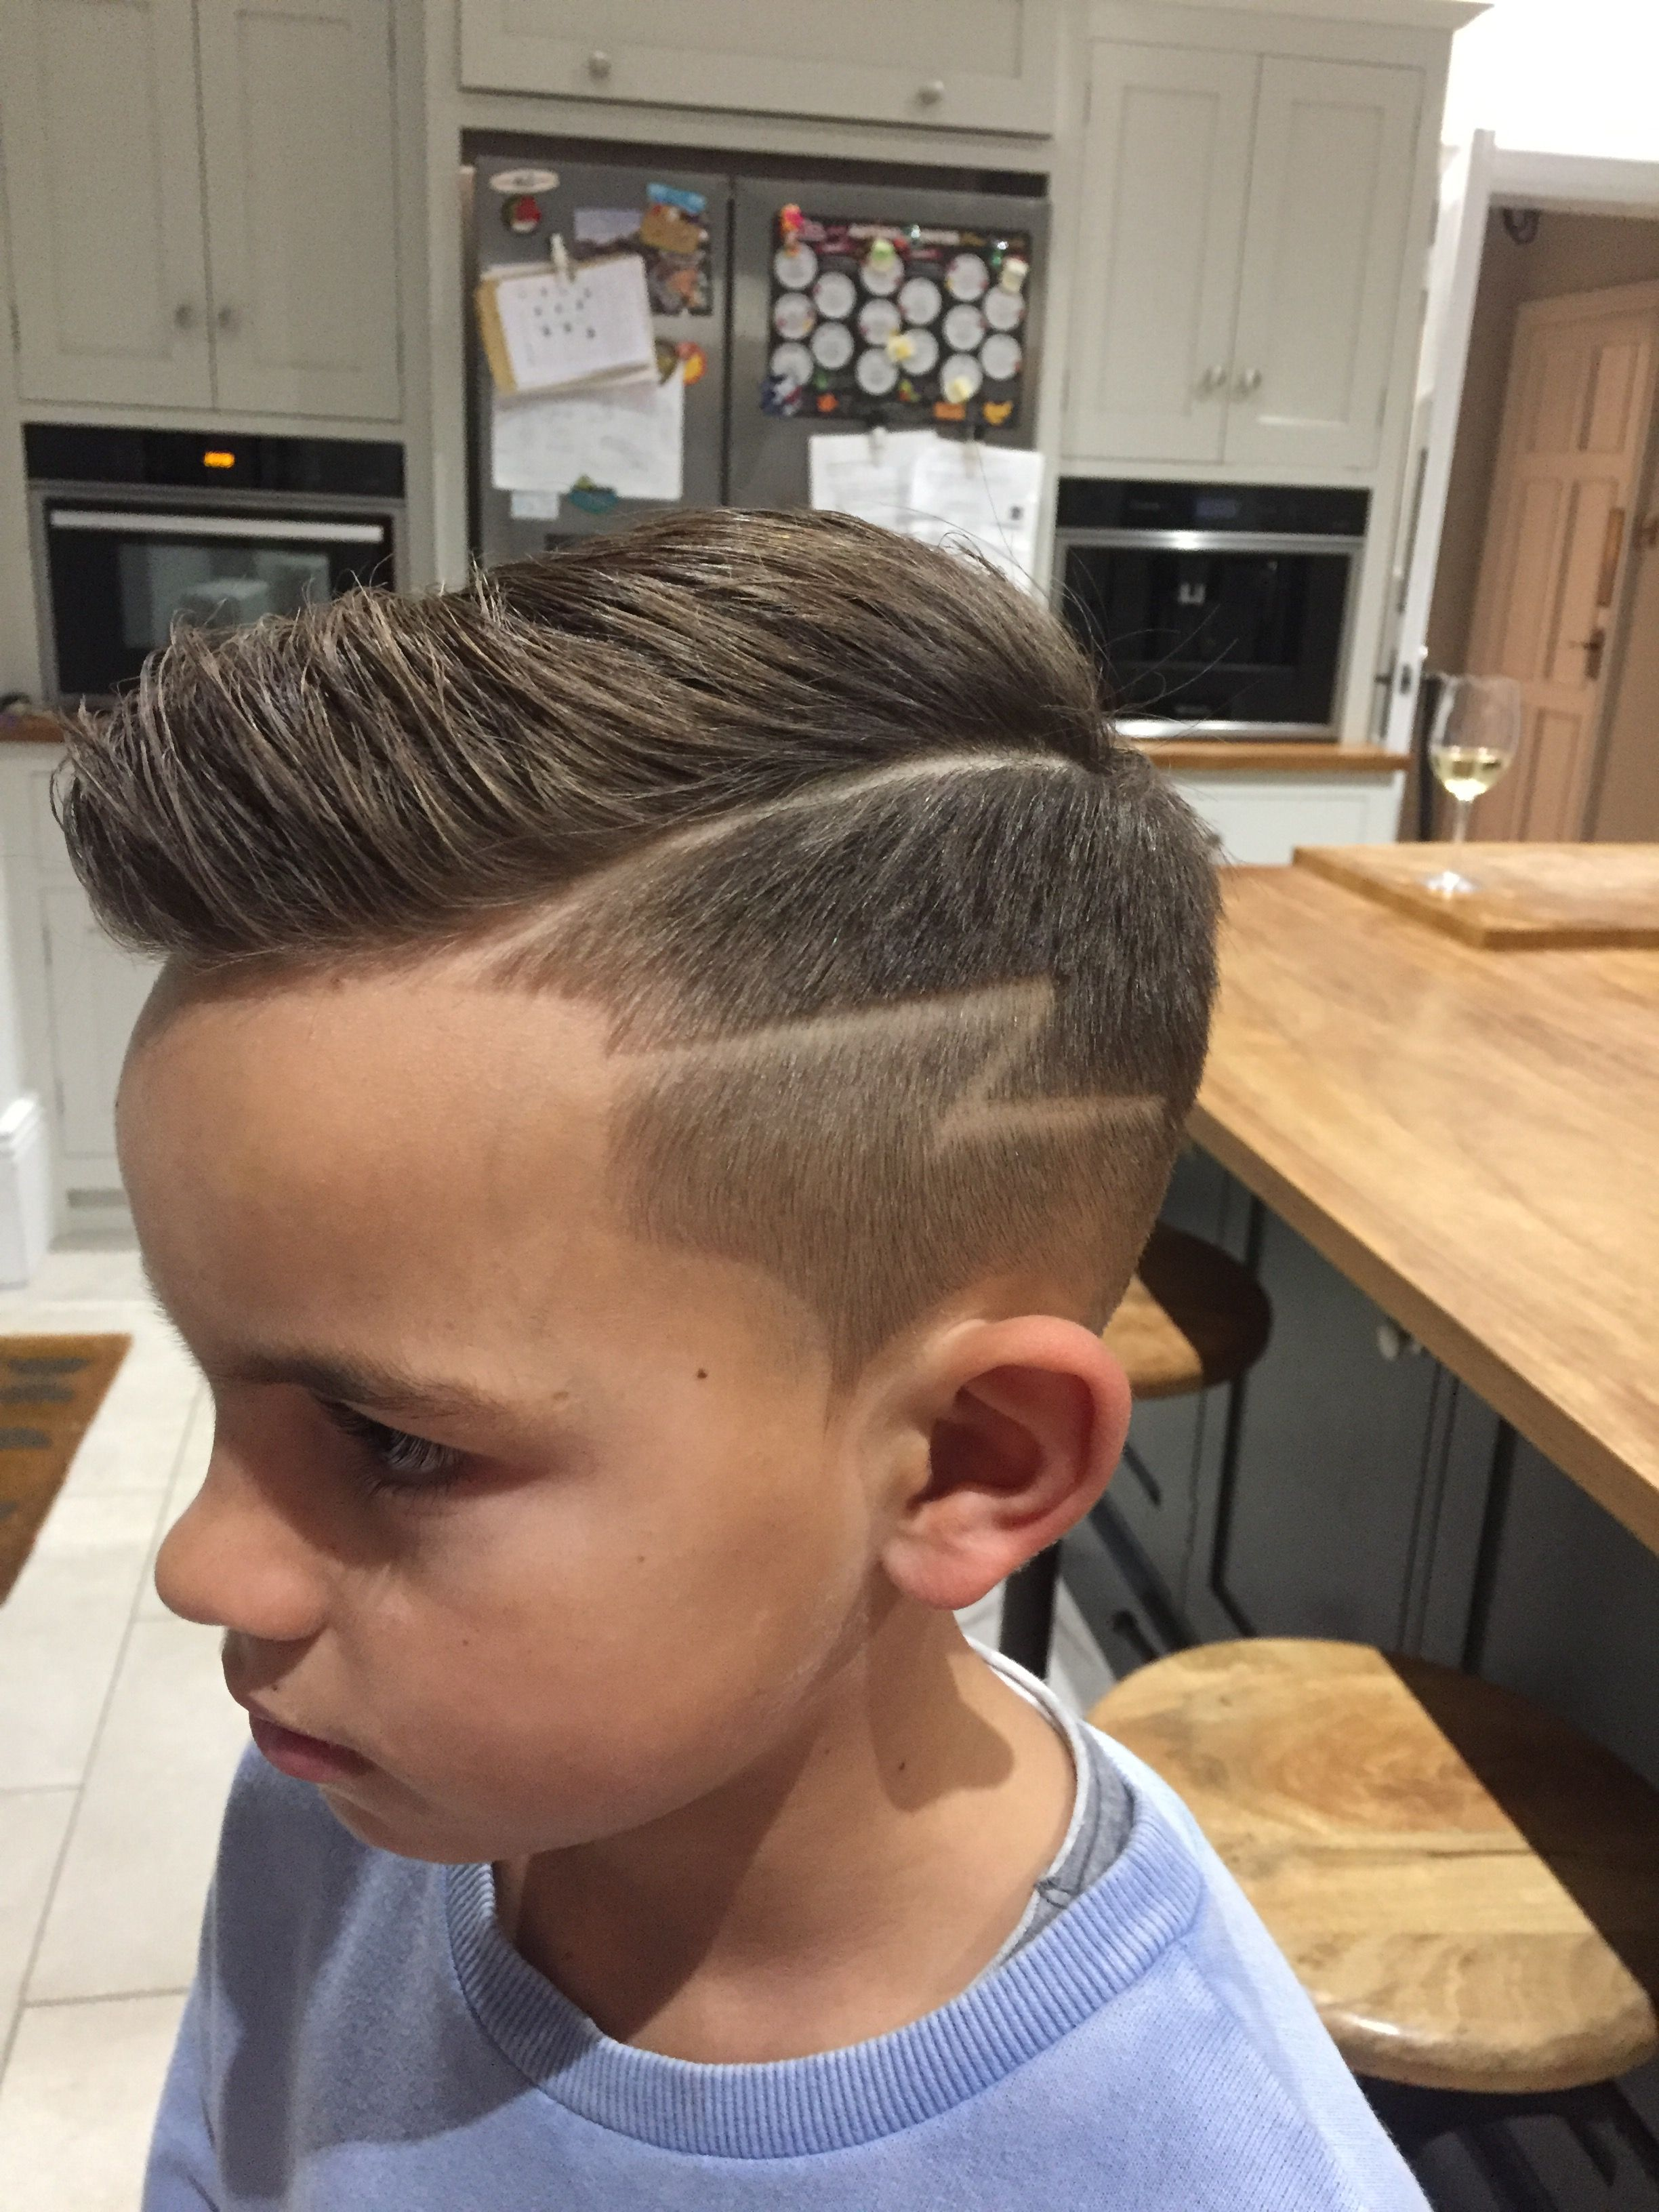 Boys Haircut With Lightning Bolt Design Boyshaircut Roccorex